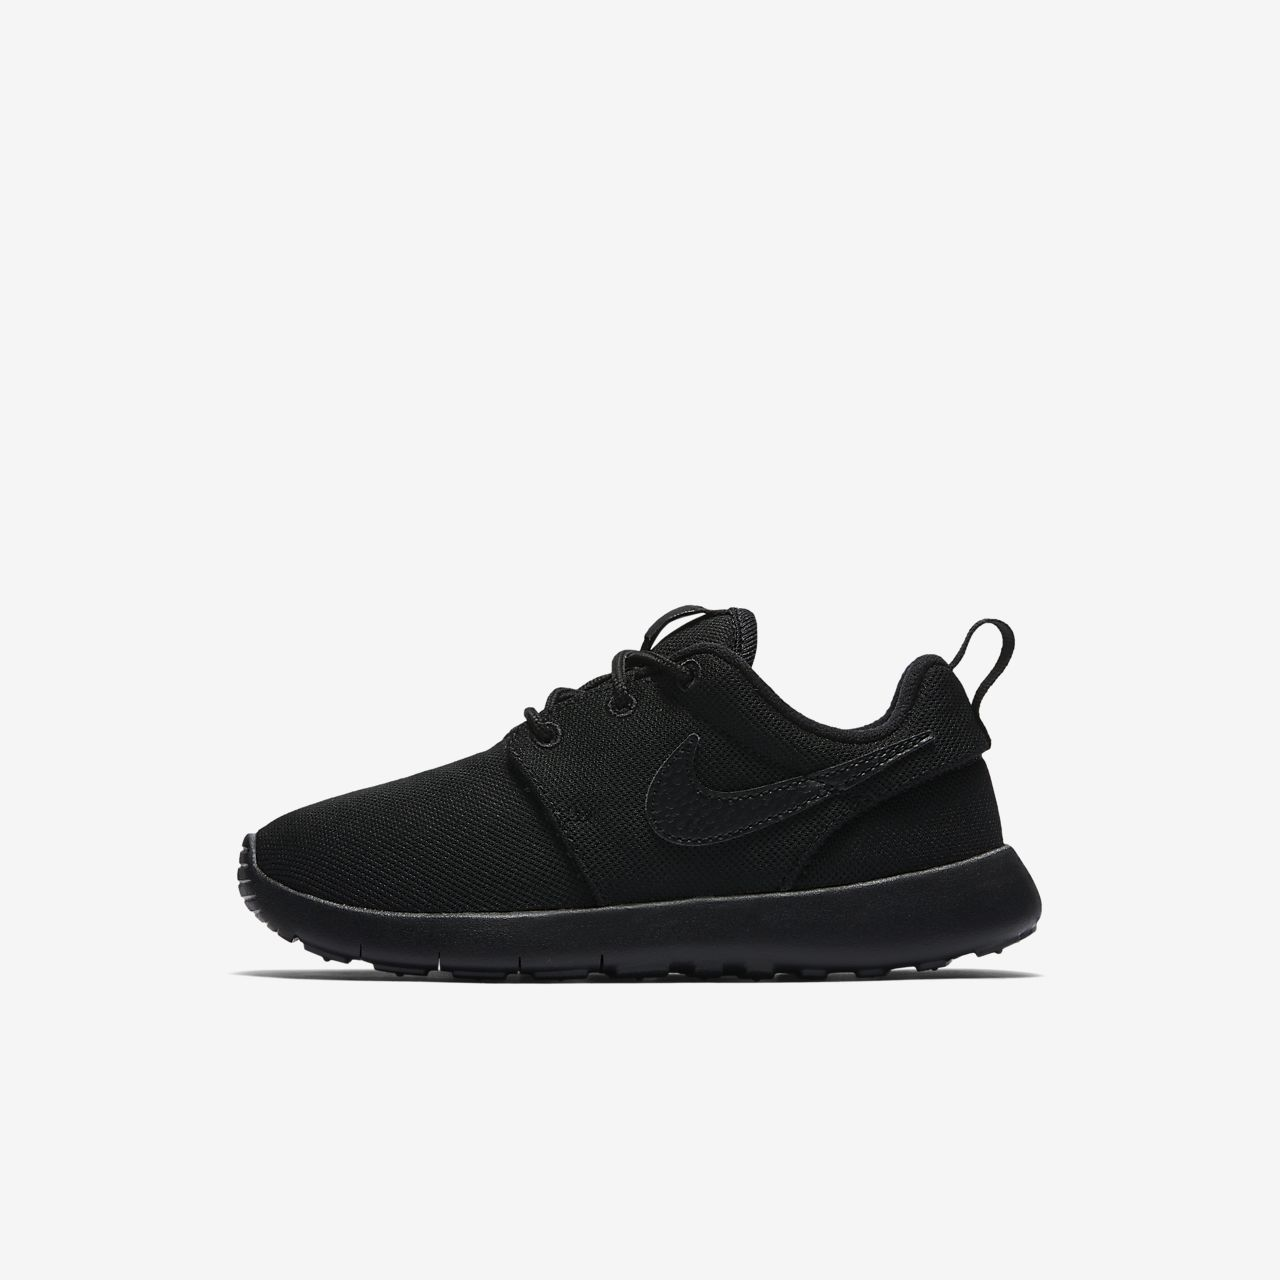 6b8ffbf461d1 Nike Roshe One Little Kids  Shoe. Nike.com